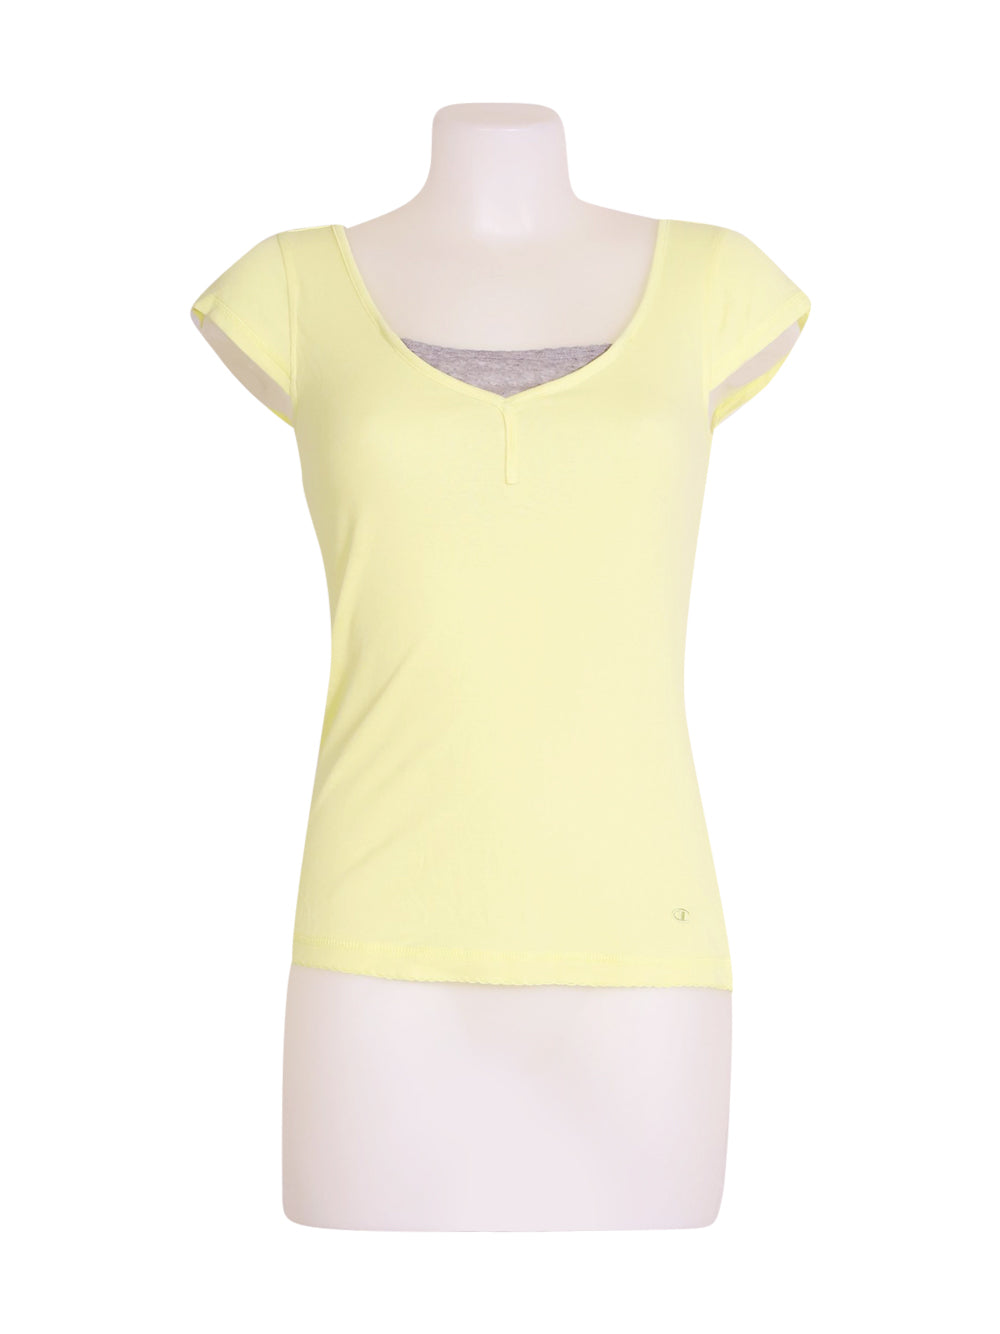 Front photo of Preloved Champion Yellow Woman's t-shirt - size 8/S